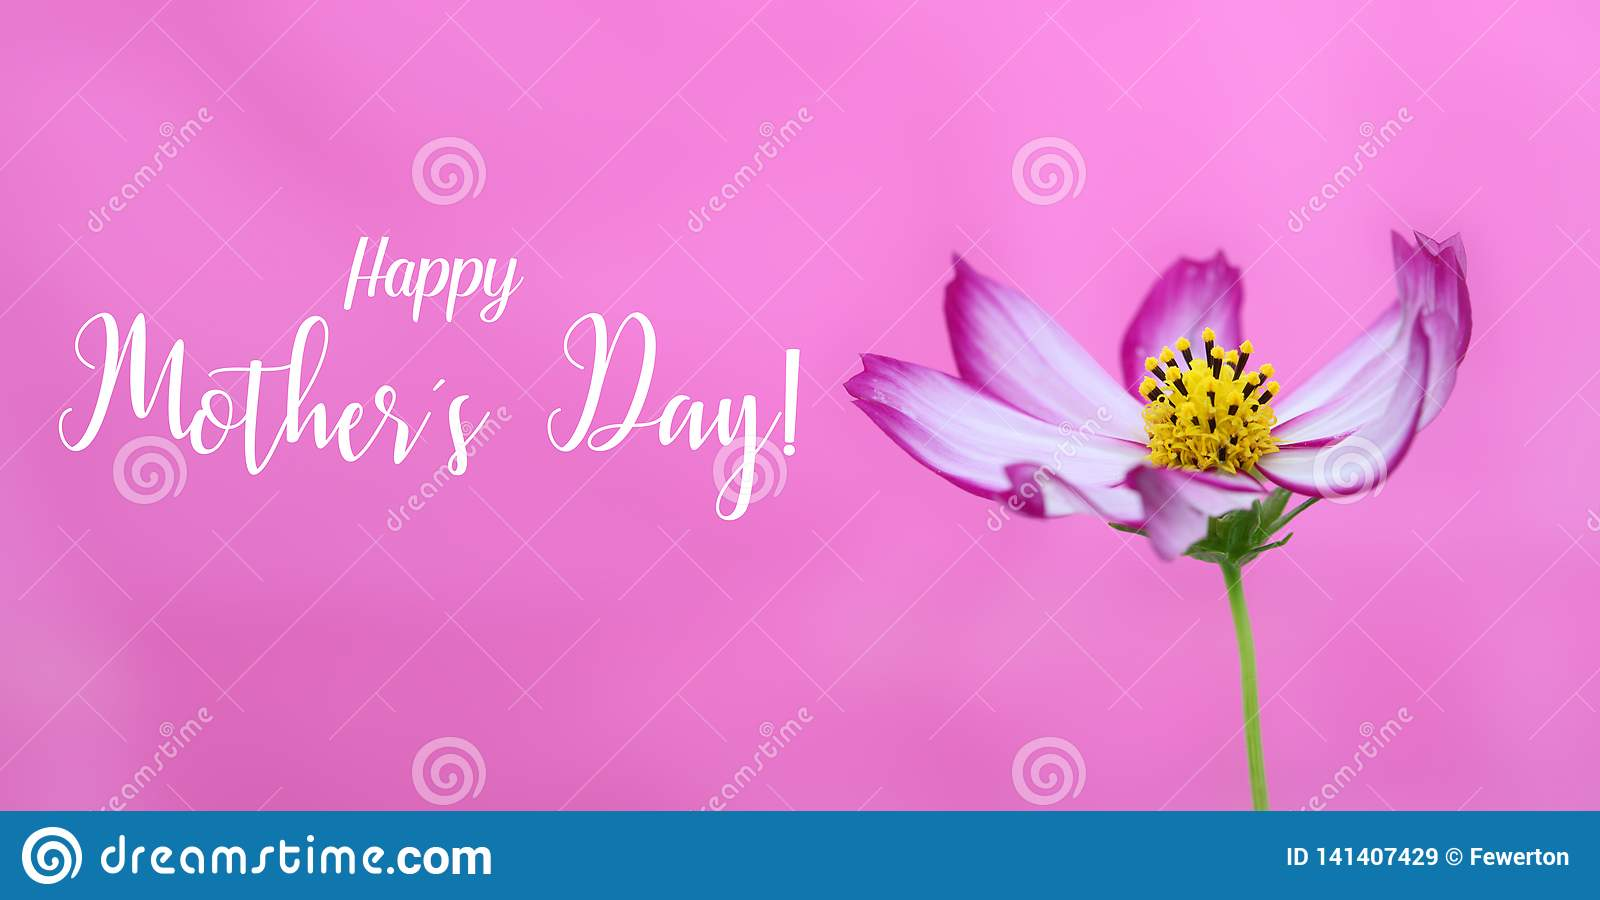 Happy Mothers`s Day! and pink wild cosmos flower macro photo as wide banner pink background and message text. Happy Mother Day